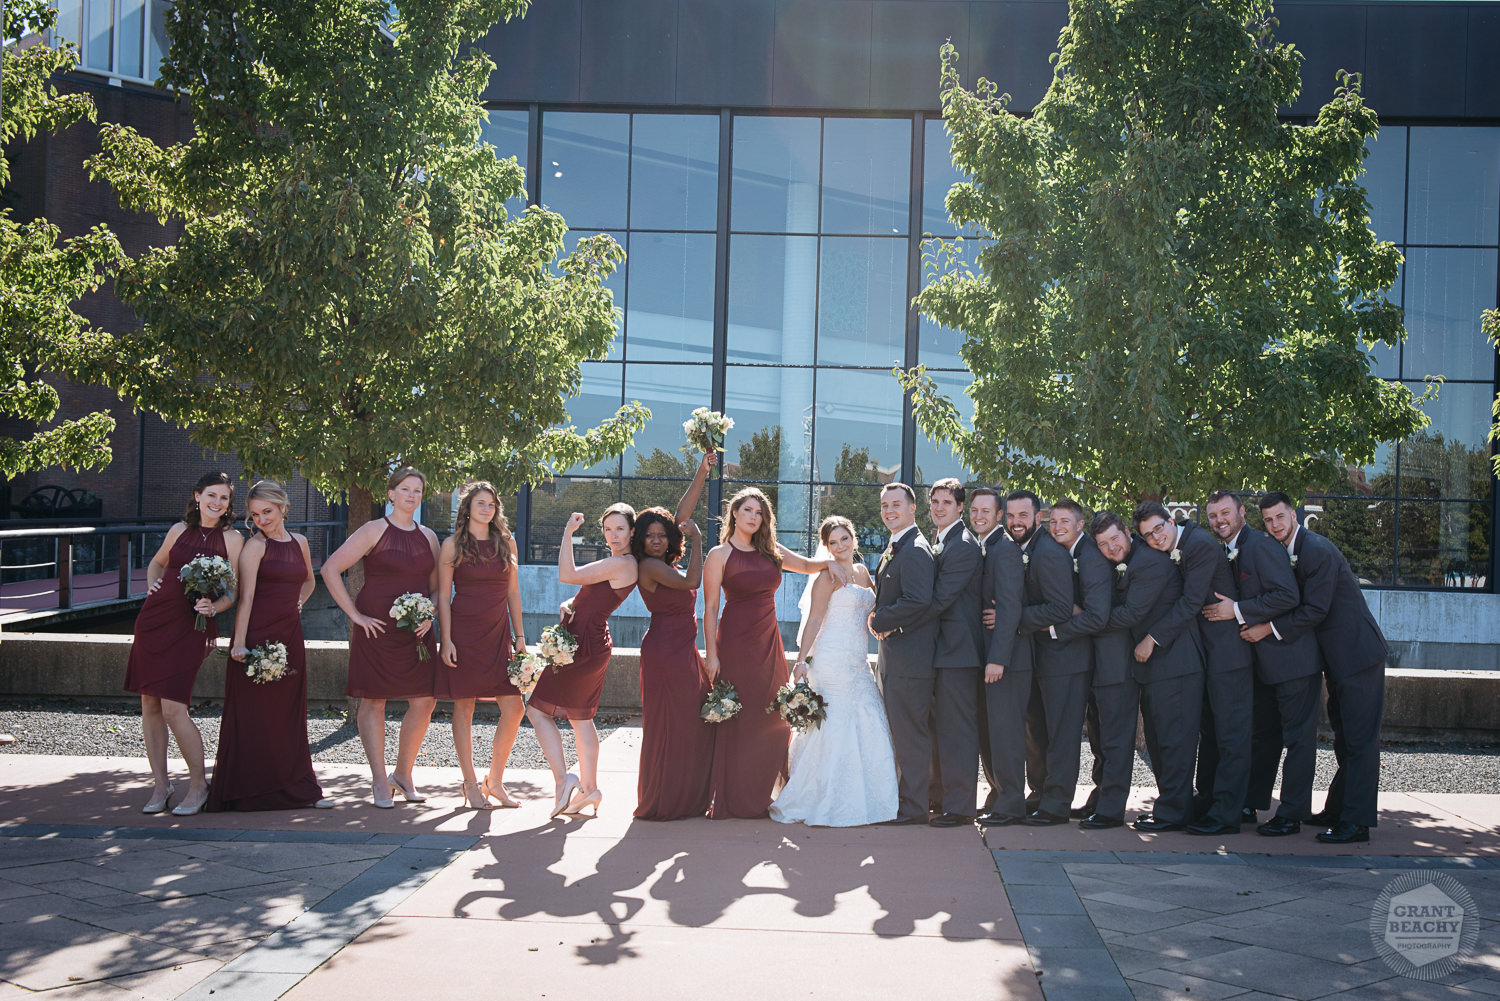 Grant Beachy wedding photographer, south bend, elkhart, chicago-29.jpg